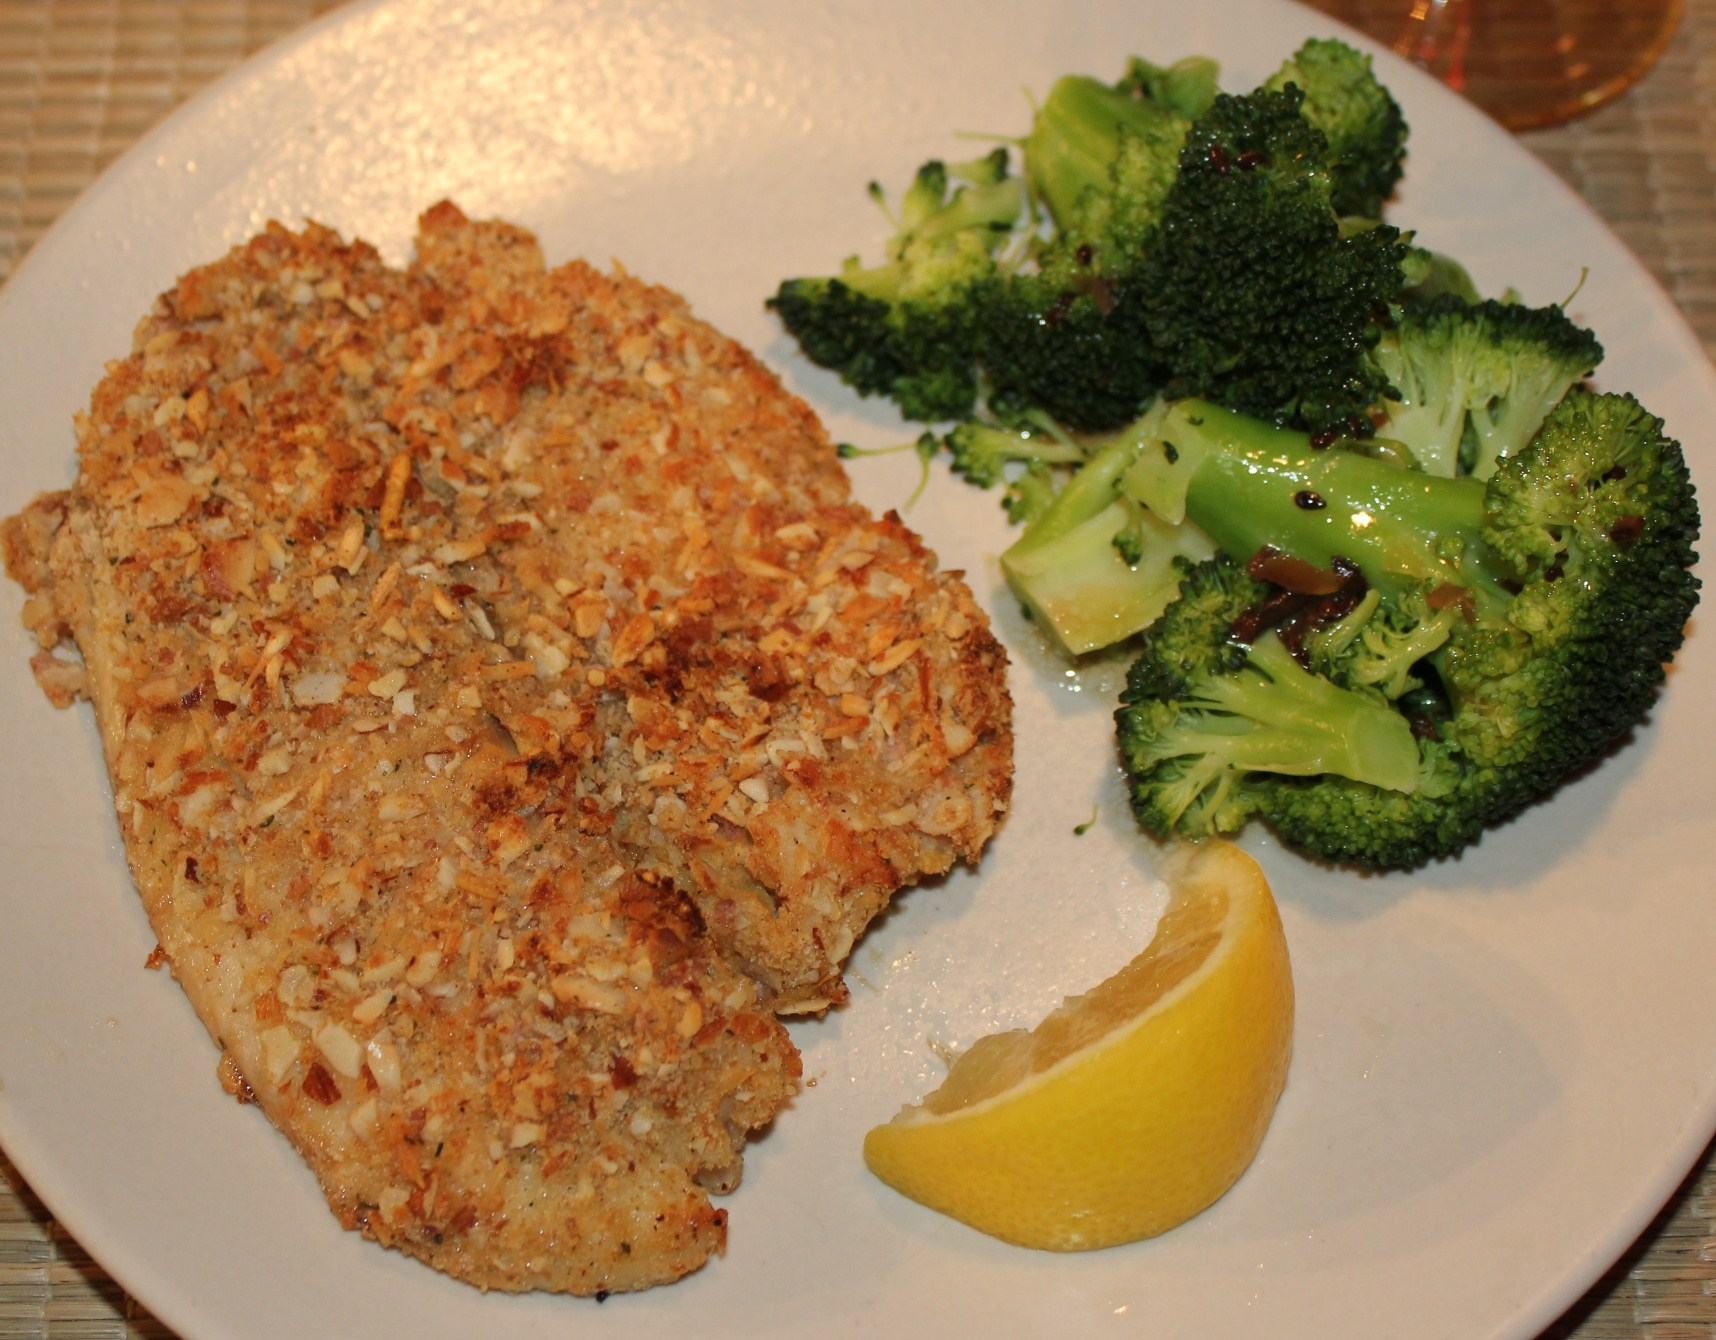 Almond And Parmesan Baked Tilapia Recipes — Dishmaps